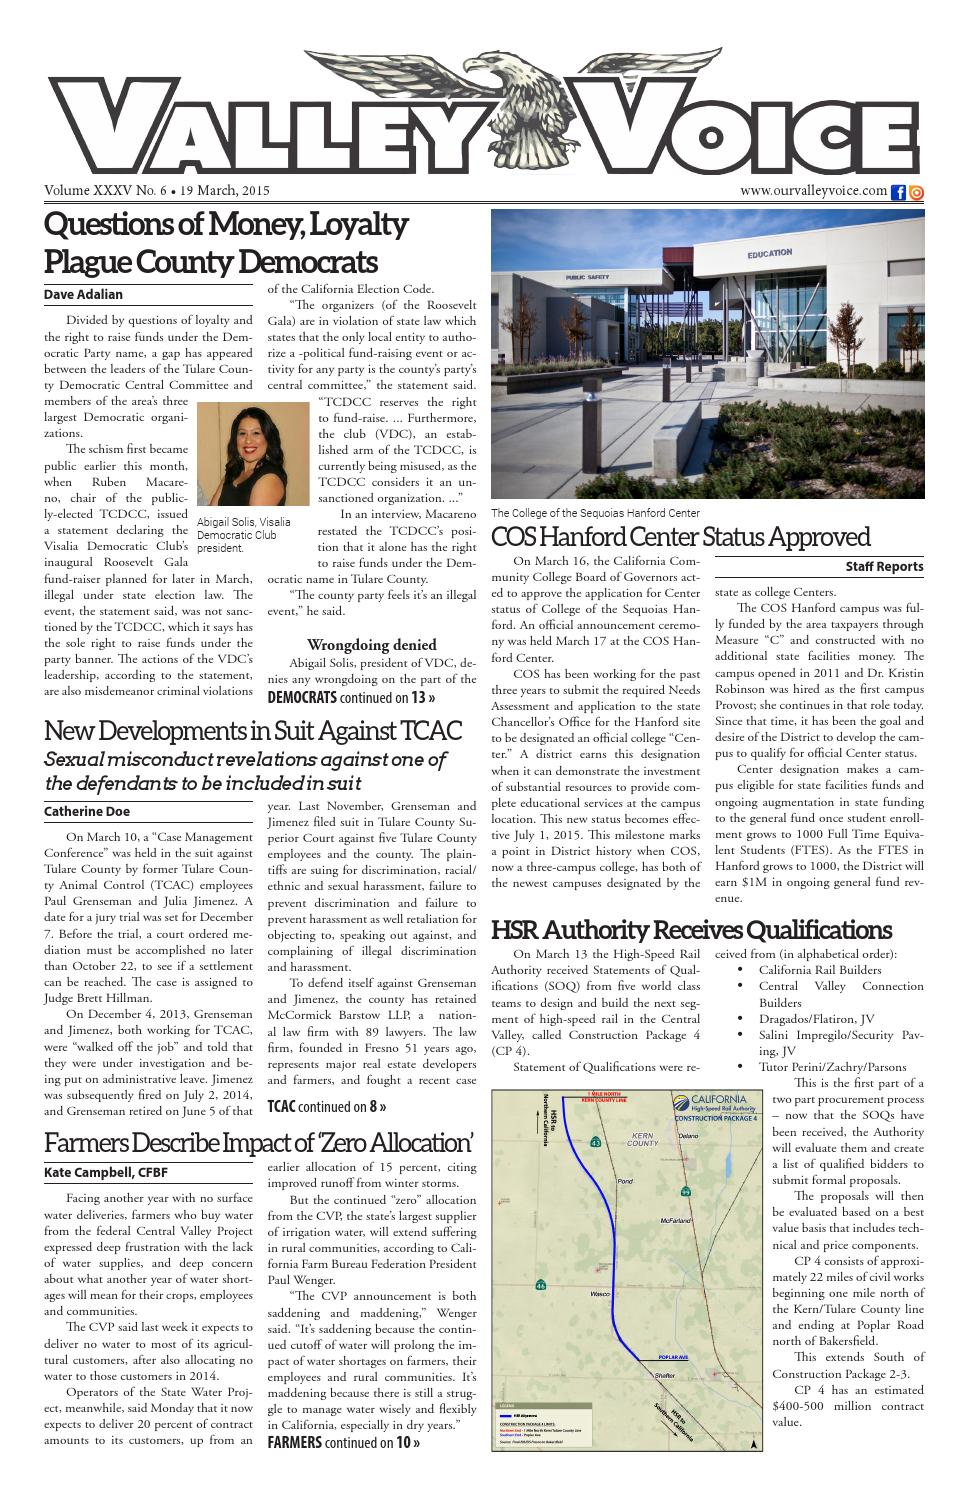 Valley Voice Issue 41 19 March 2015 By Valley Voice Issuu